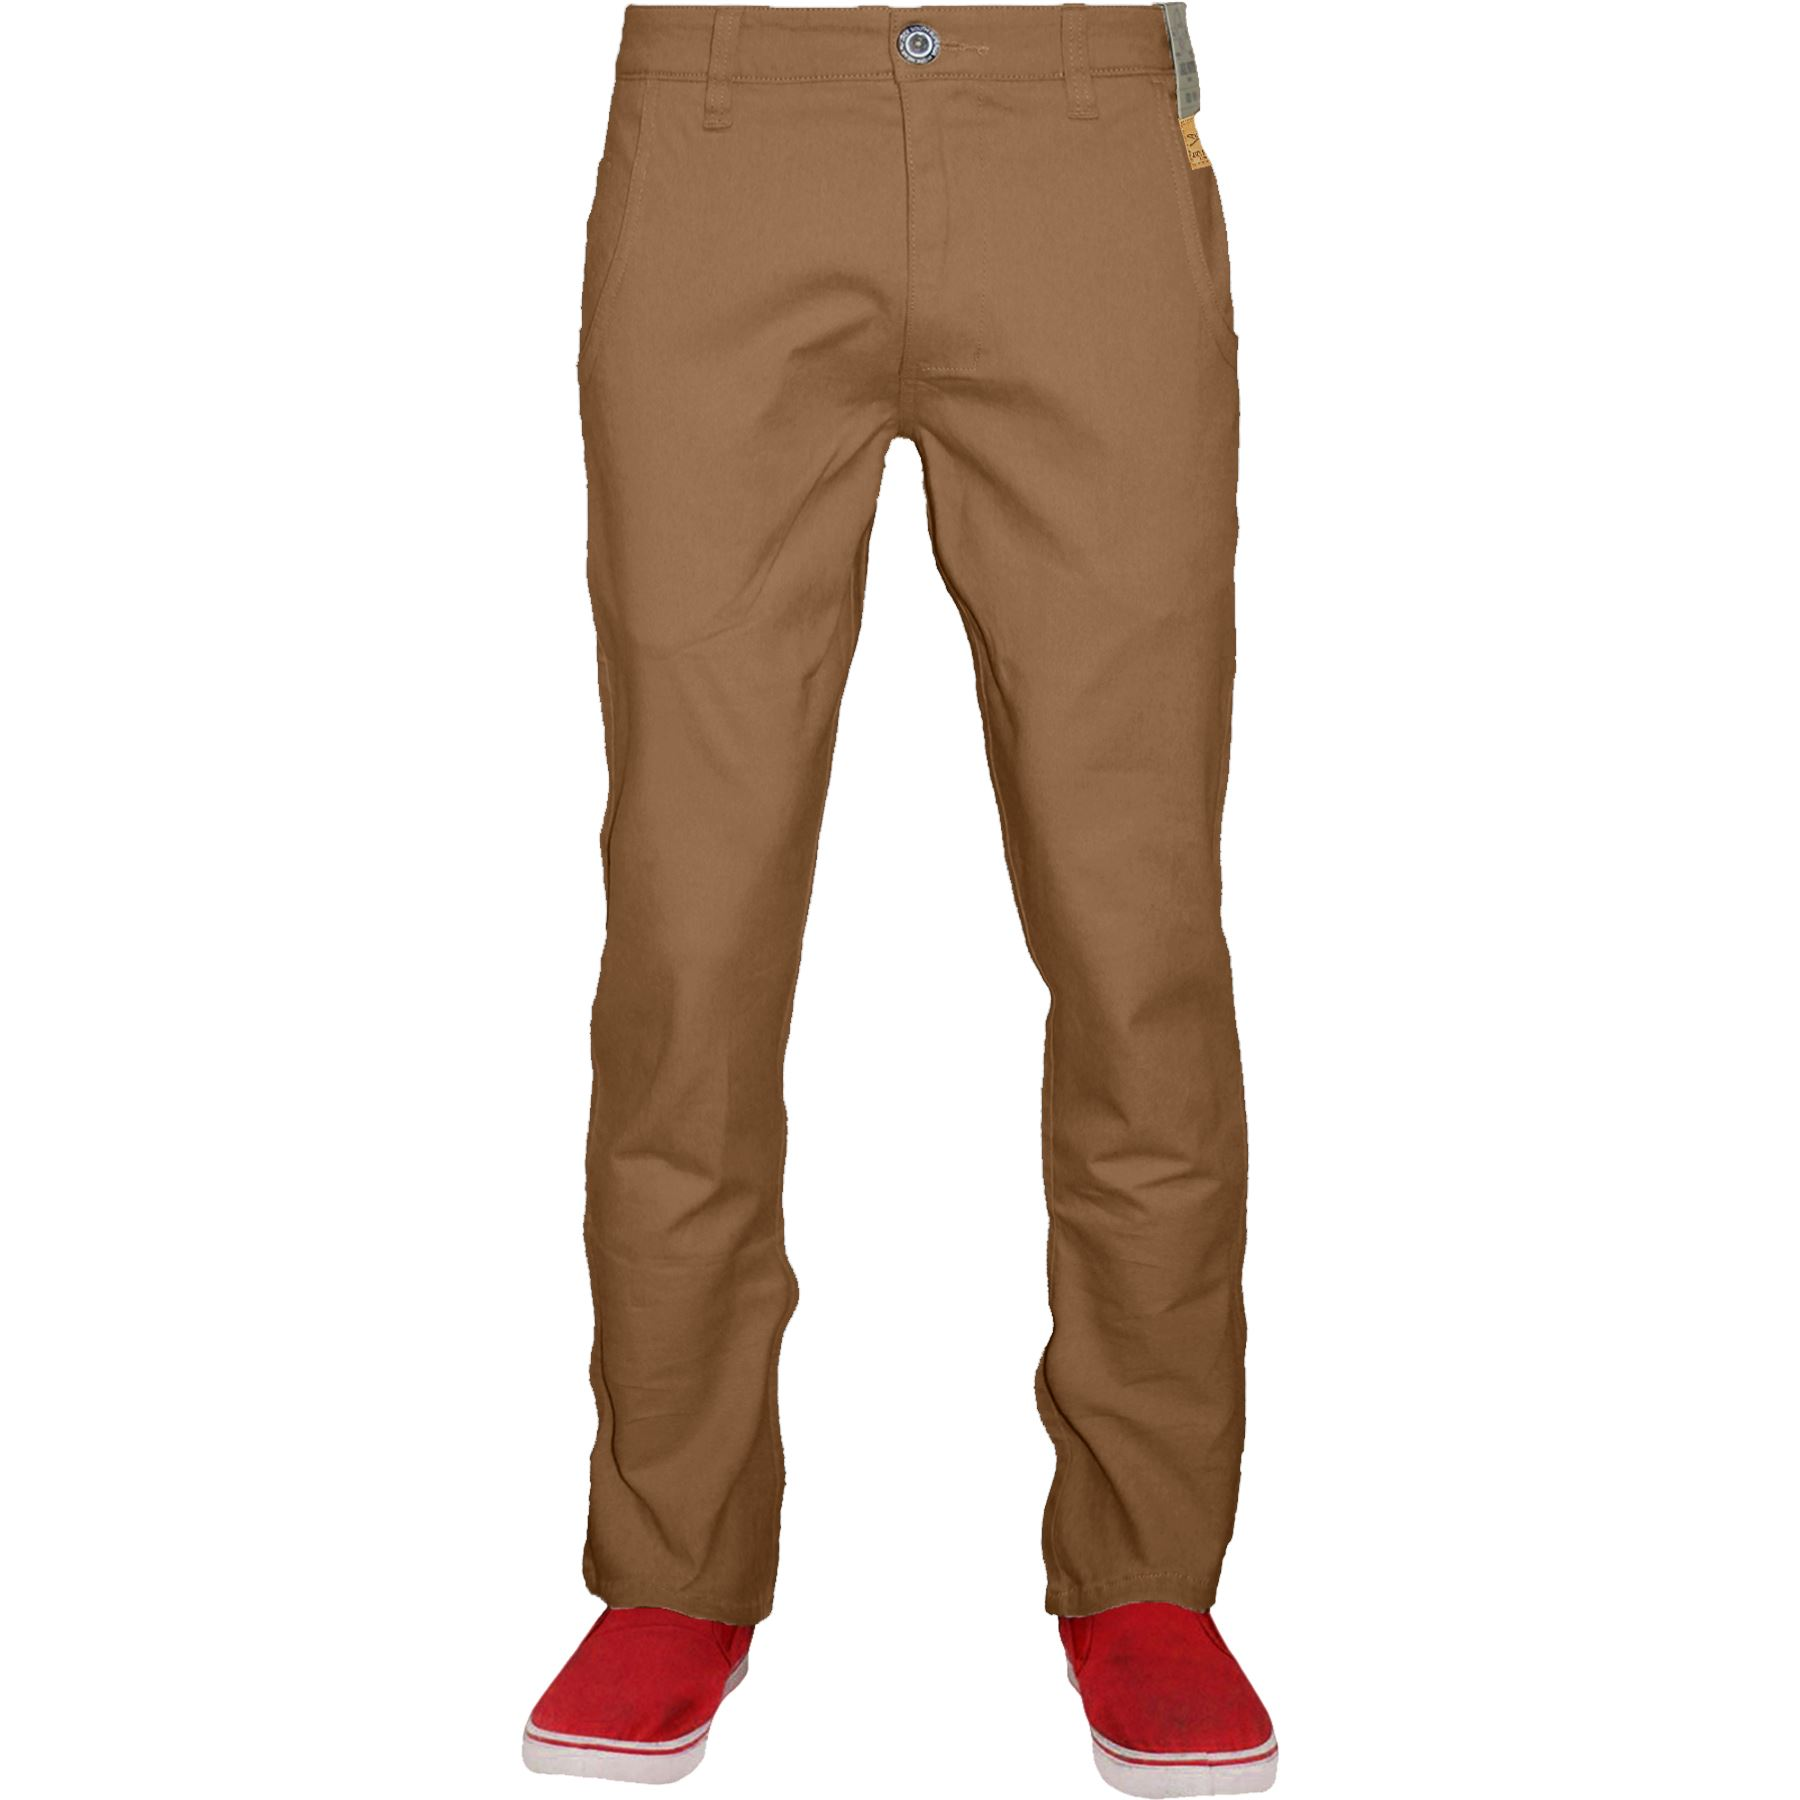 Mens-Chino-Classic-Regular-Fit-Trouser-Casual-Stretch-Spandex-Pants-Size-32-40 thumbnail 26